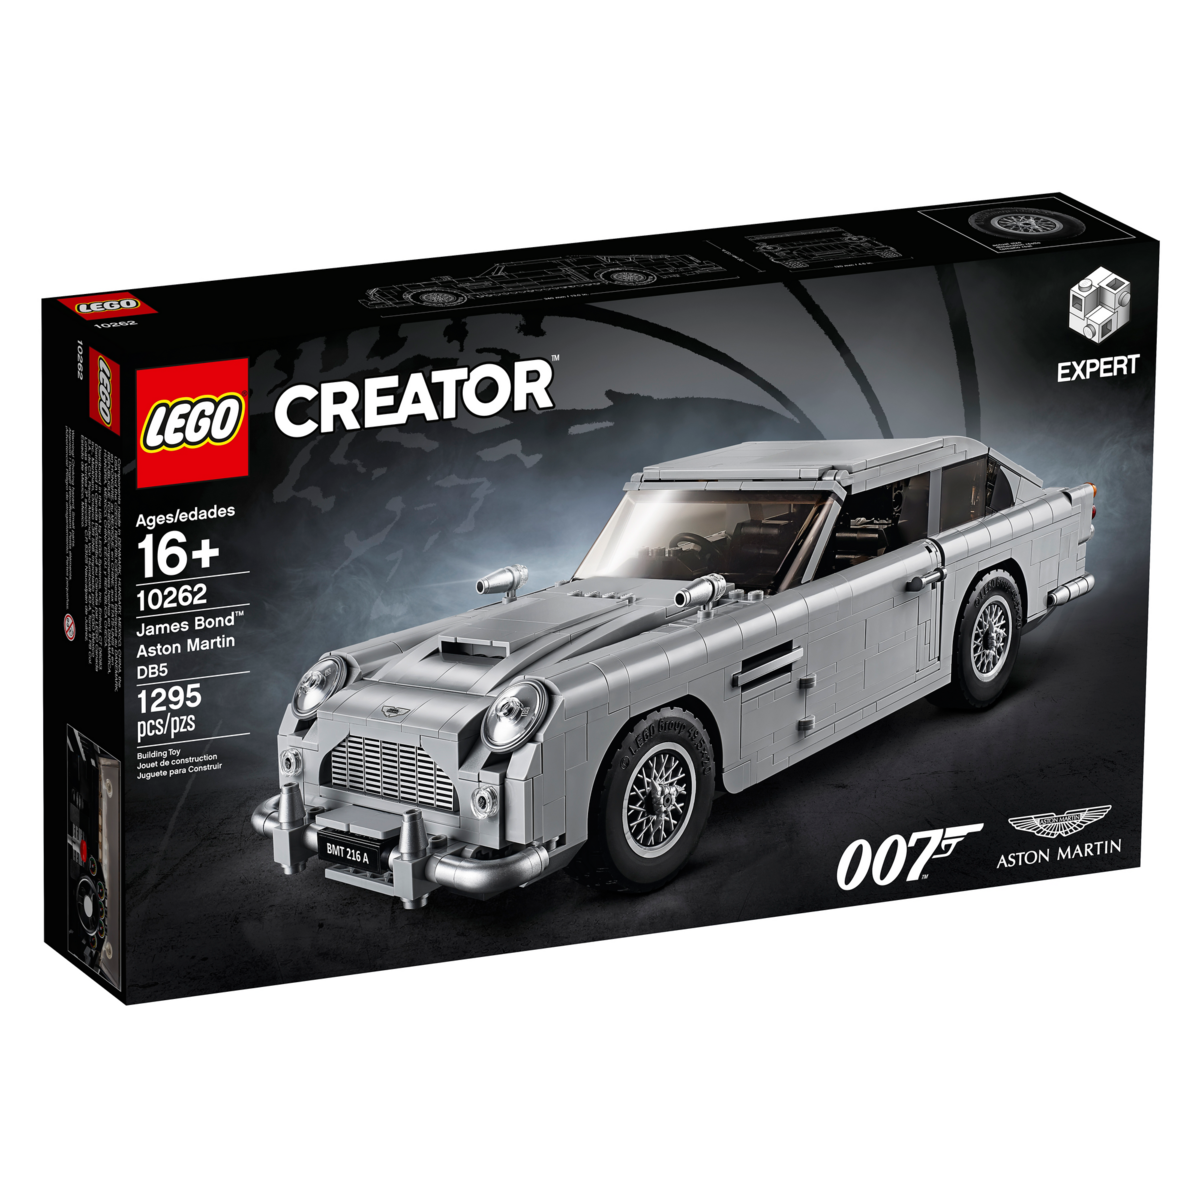 10262 james bond aston martin db5 - brickipedia, the lego wiki